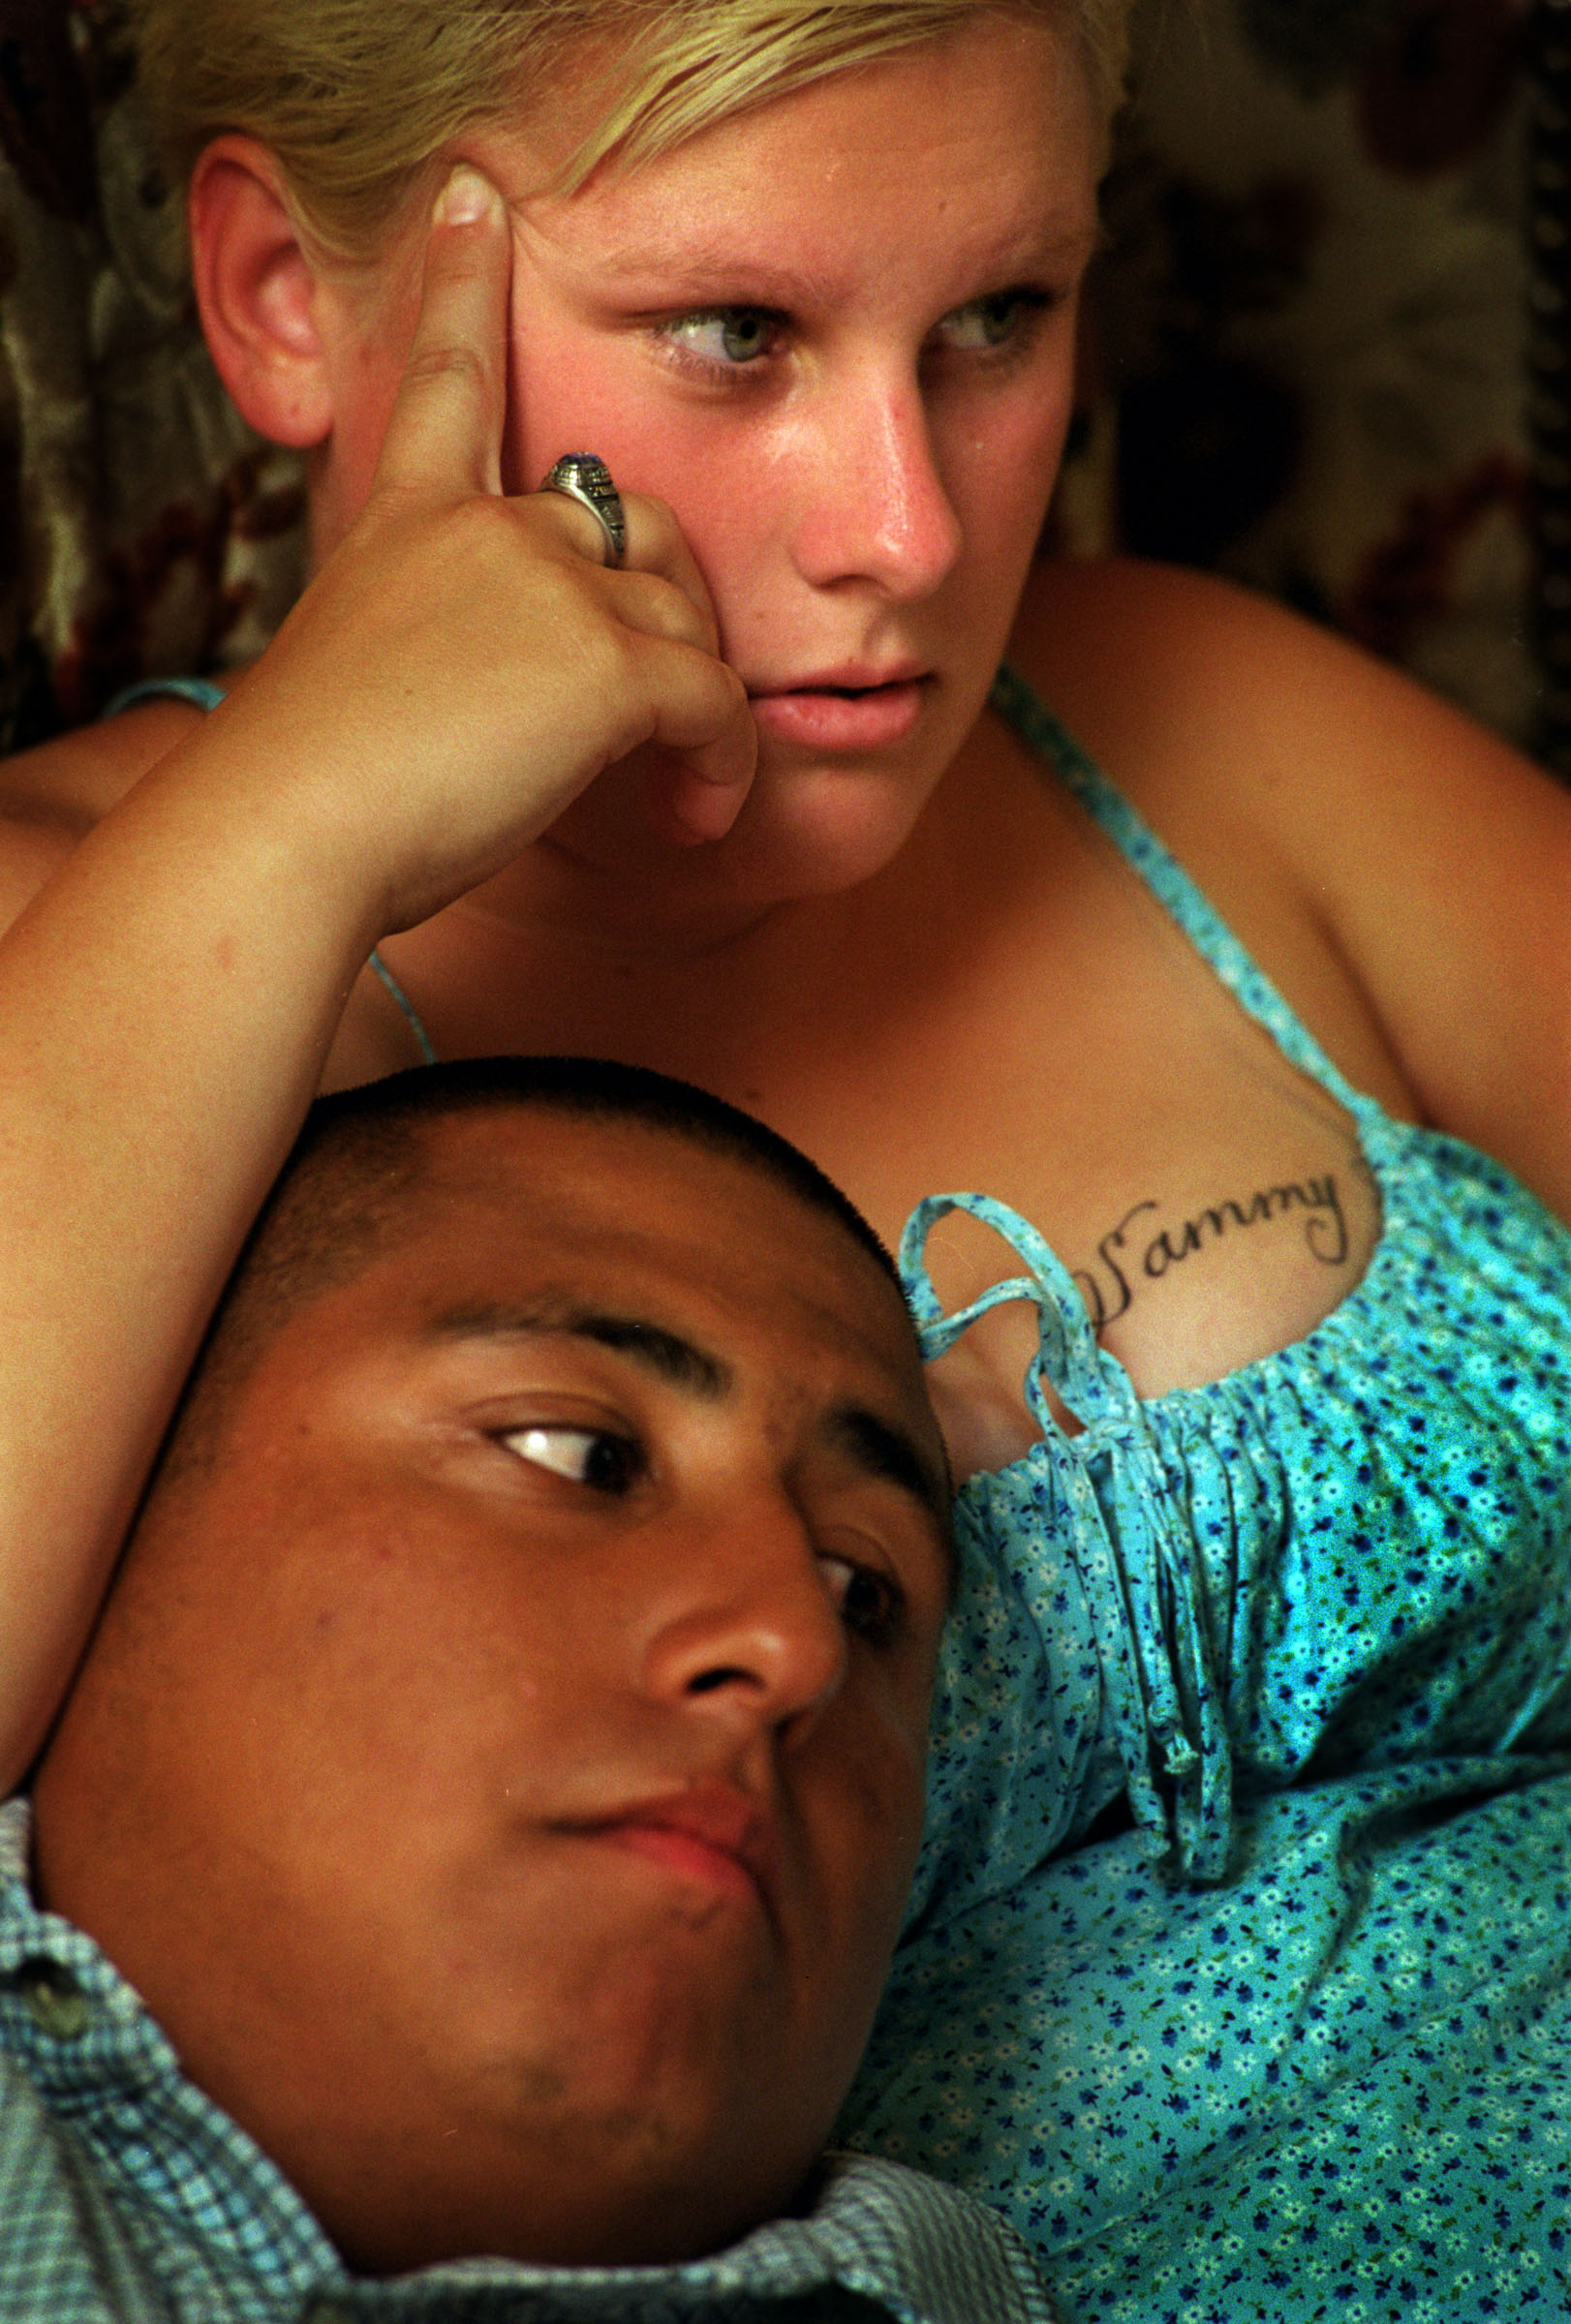 On her wedding night, Janea took Sam's name, Lopez, spending a quiet evening watching television.  Sam 19, weighs 300 pounds and loves telling tales of being a triggerman for LA's notorious Main Street Mafia. She has his name, Sammy, tattooed across her chest. ©Gail Fisher Los Angeles Times